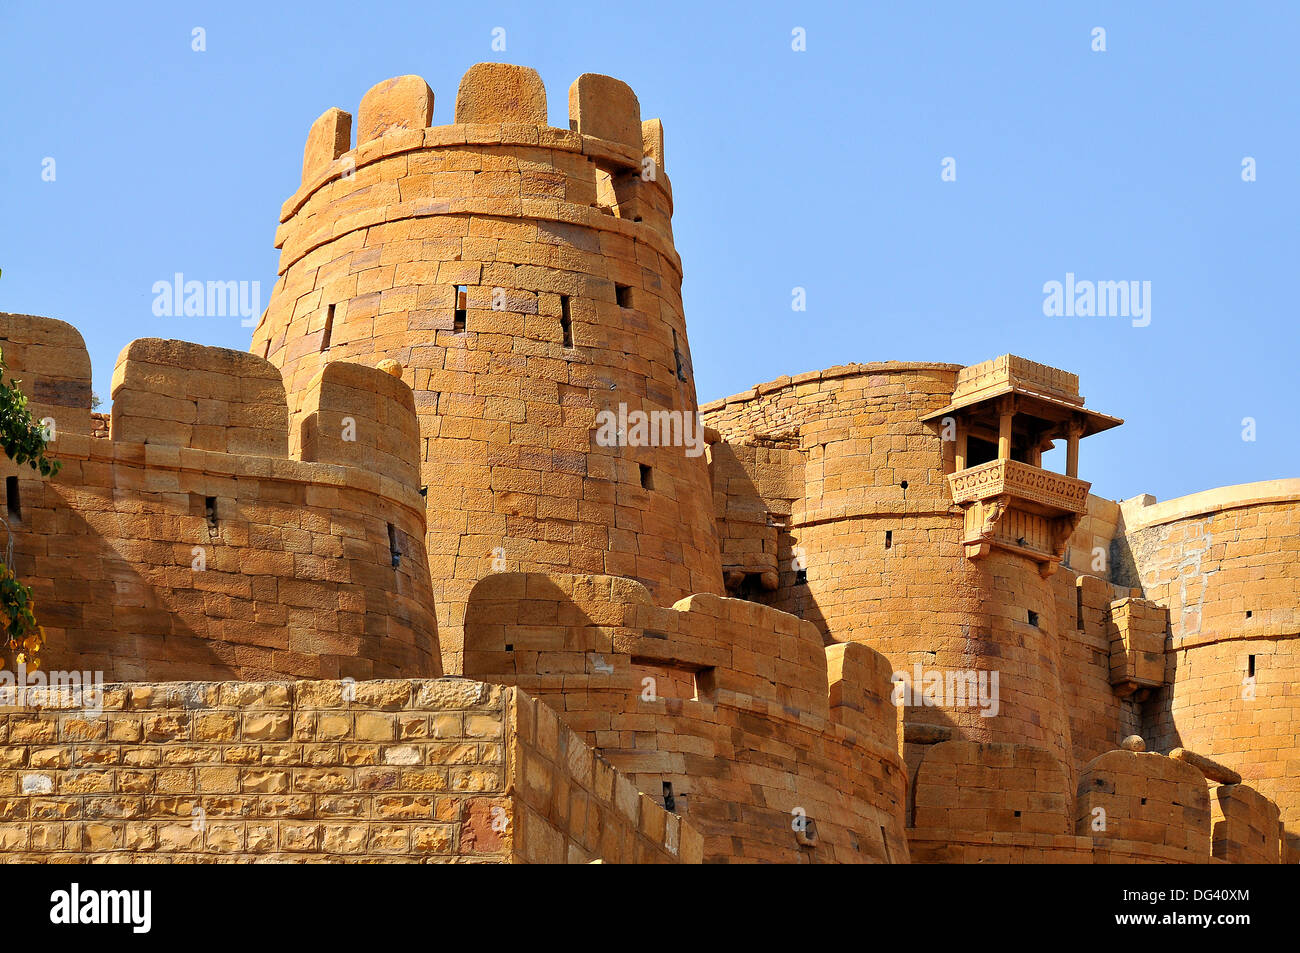 Remparts, towers and fortifications of Jaisalmer, Rajasthan, India, Asia - Stock Image